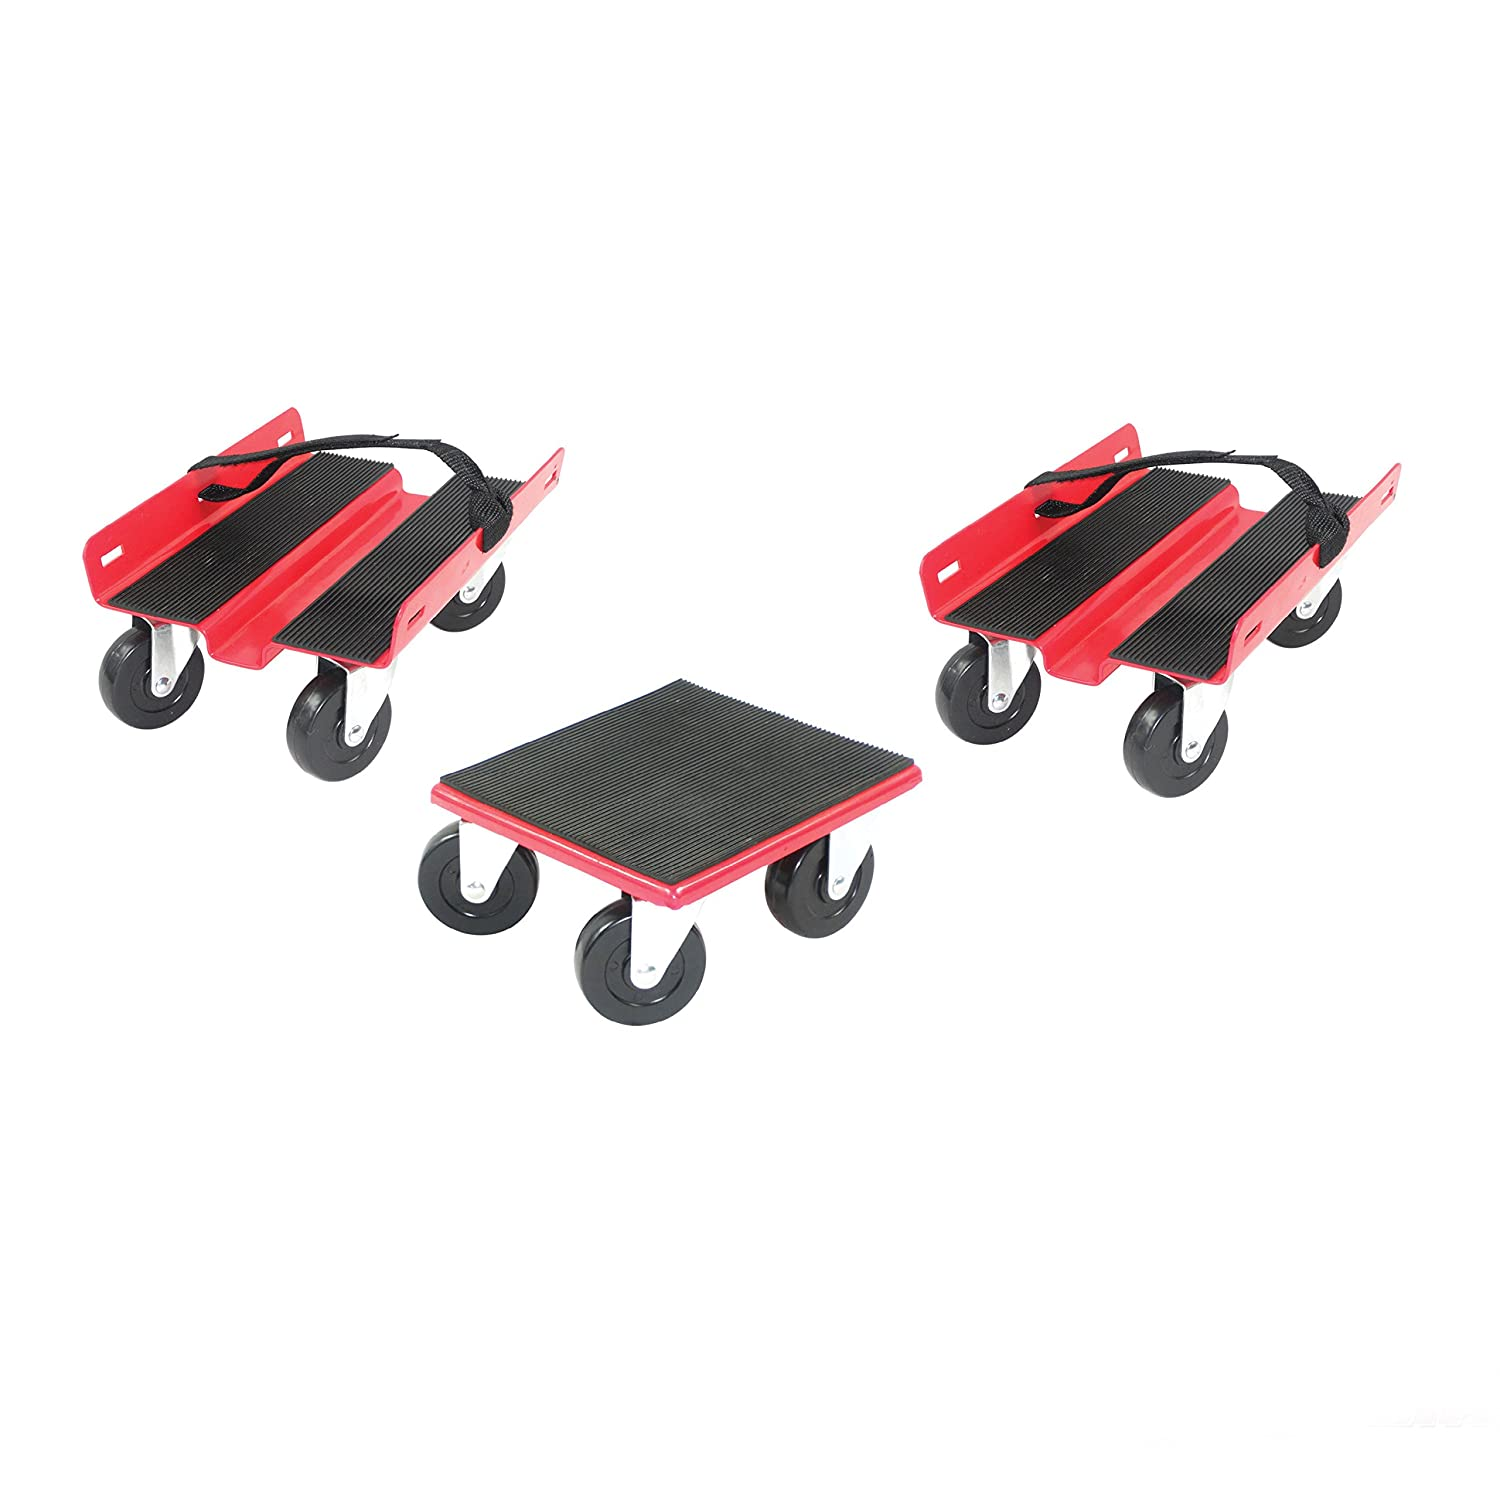 Extreme Max 5800.2000 Economy Snowmobile Dolly System Extreme Max Products